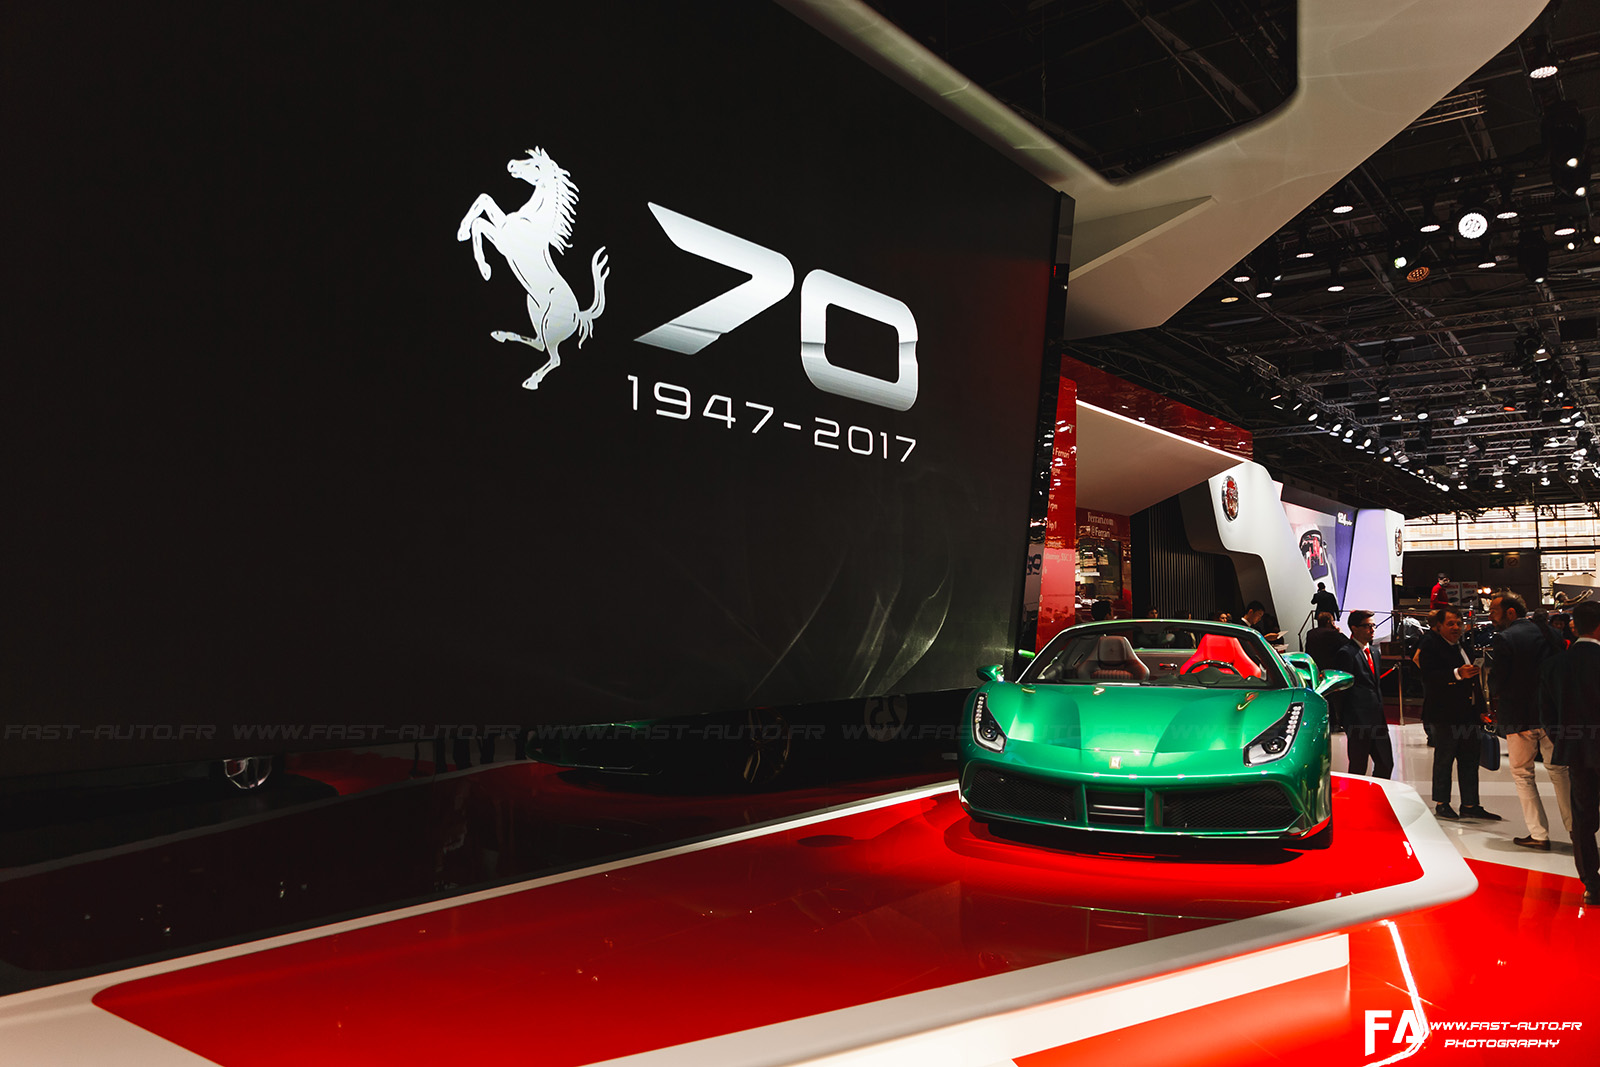 Ferrari au Mondial de l'Automobile Paris 2016 - Photos